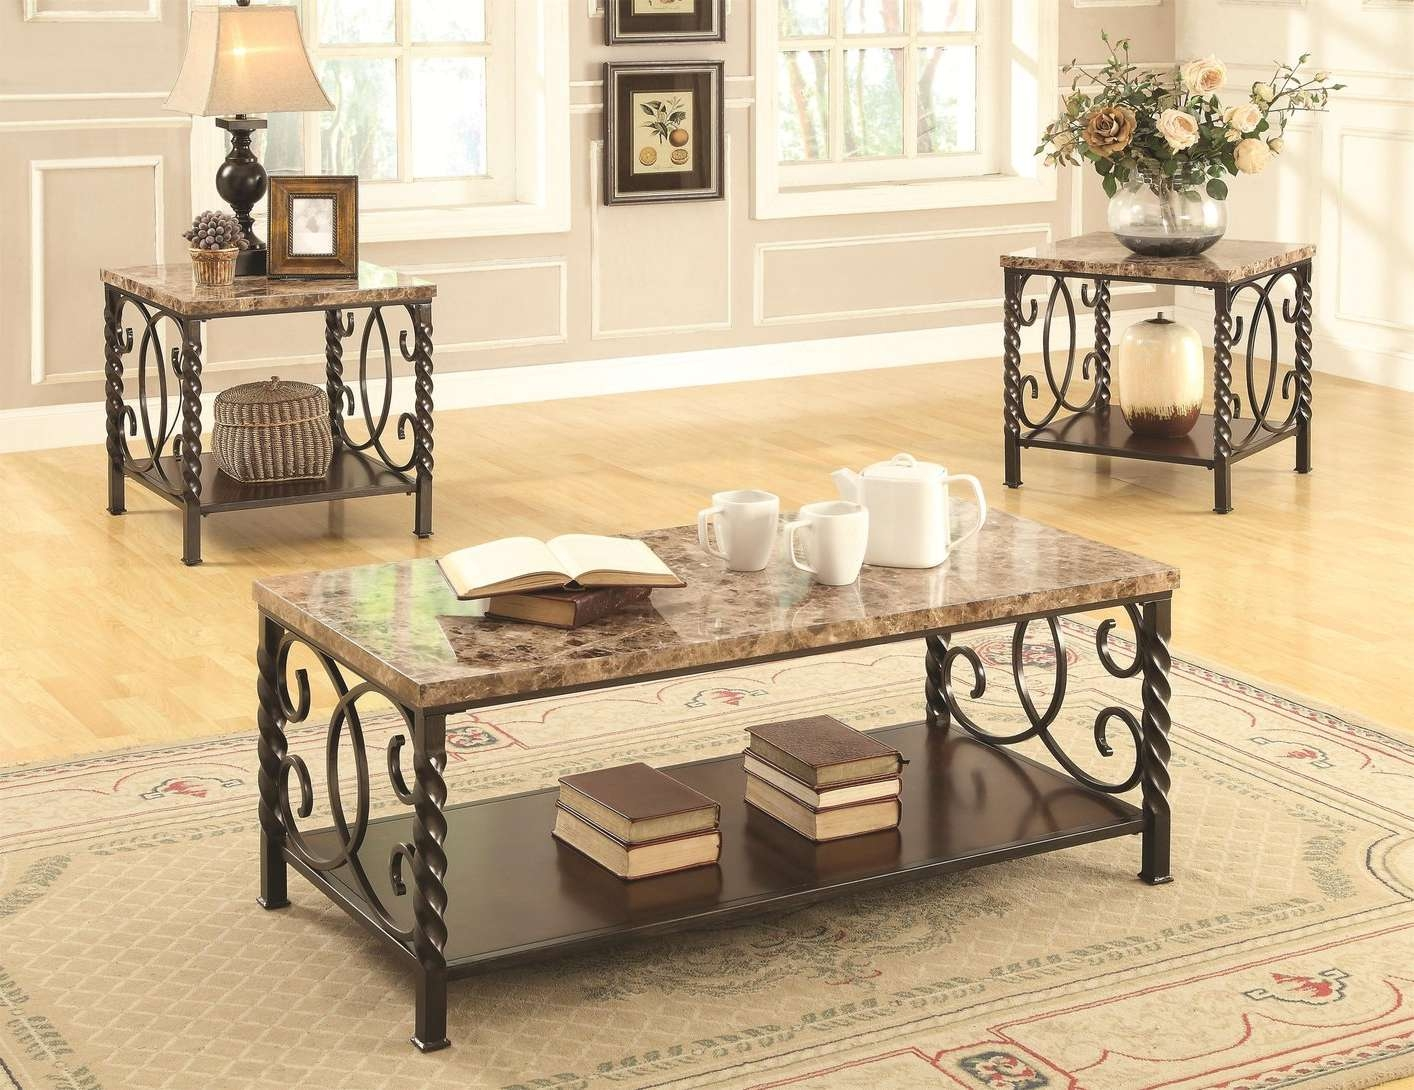 Lockhart Brown Marble Coffee Table Set – Steal A Sofa Furniture Within Current Marble Coffee Tables (View 13 of 20)